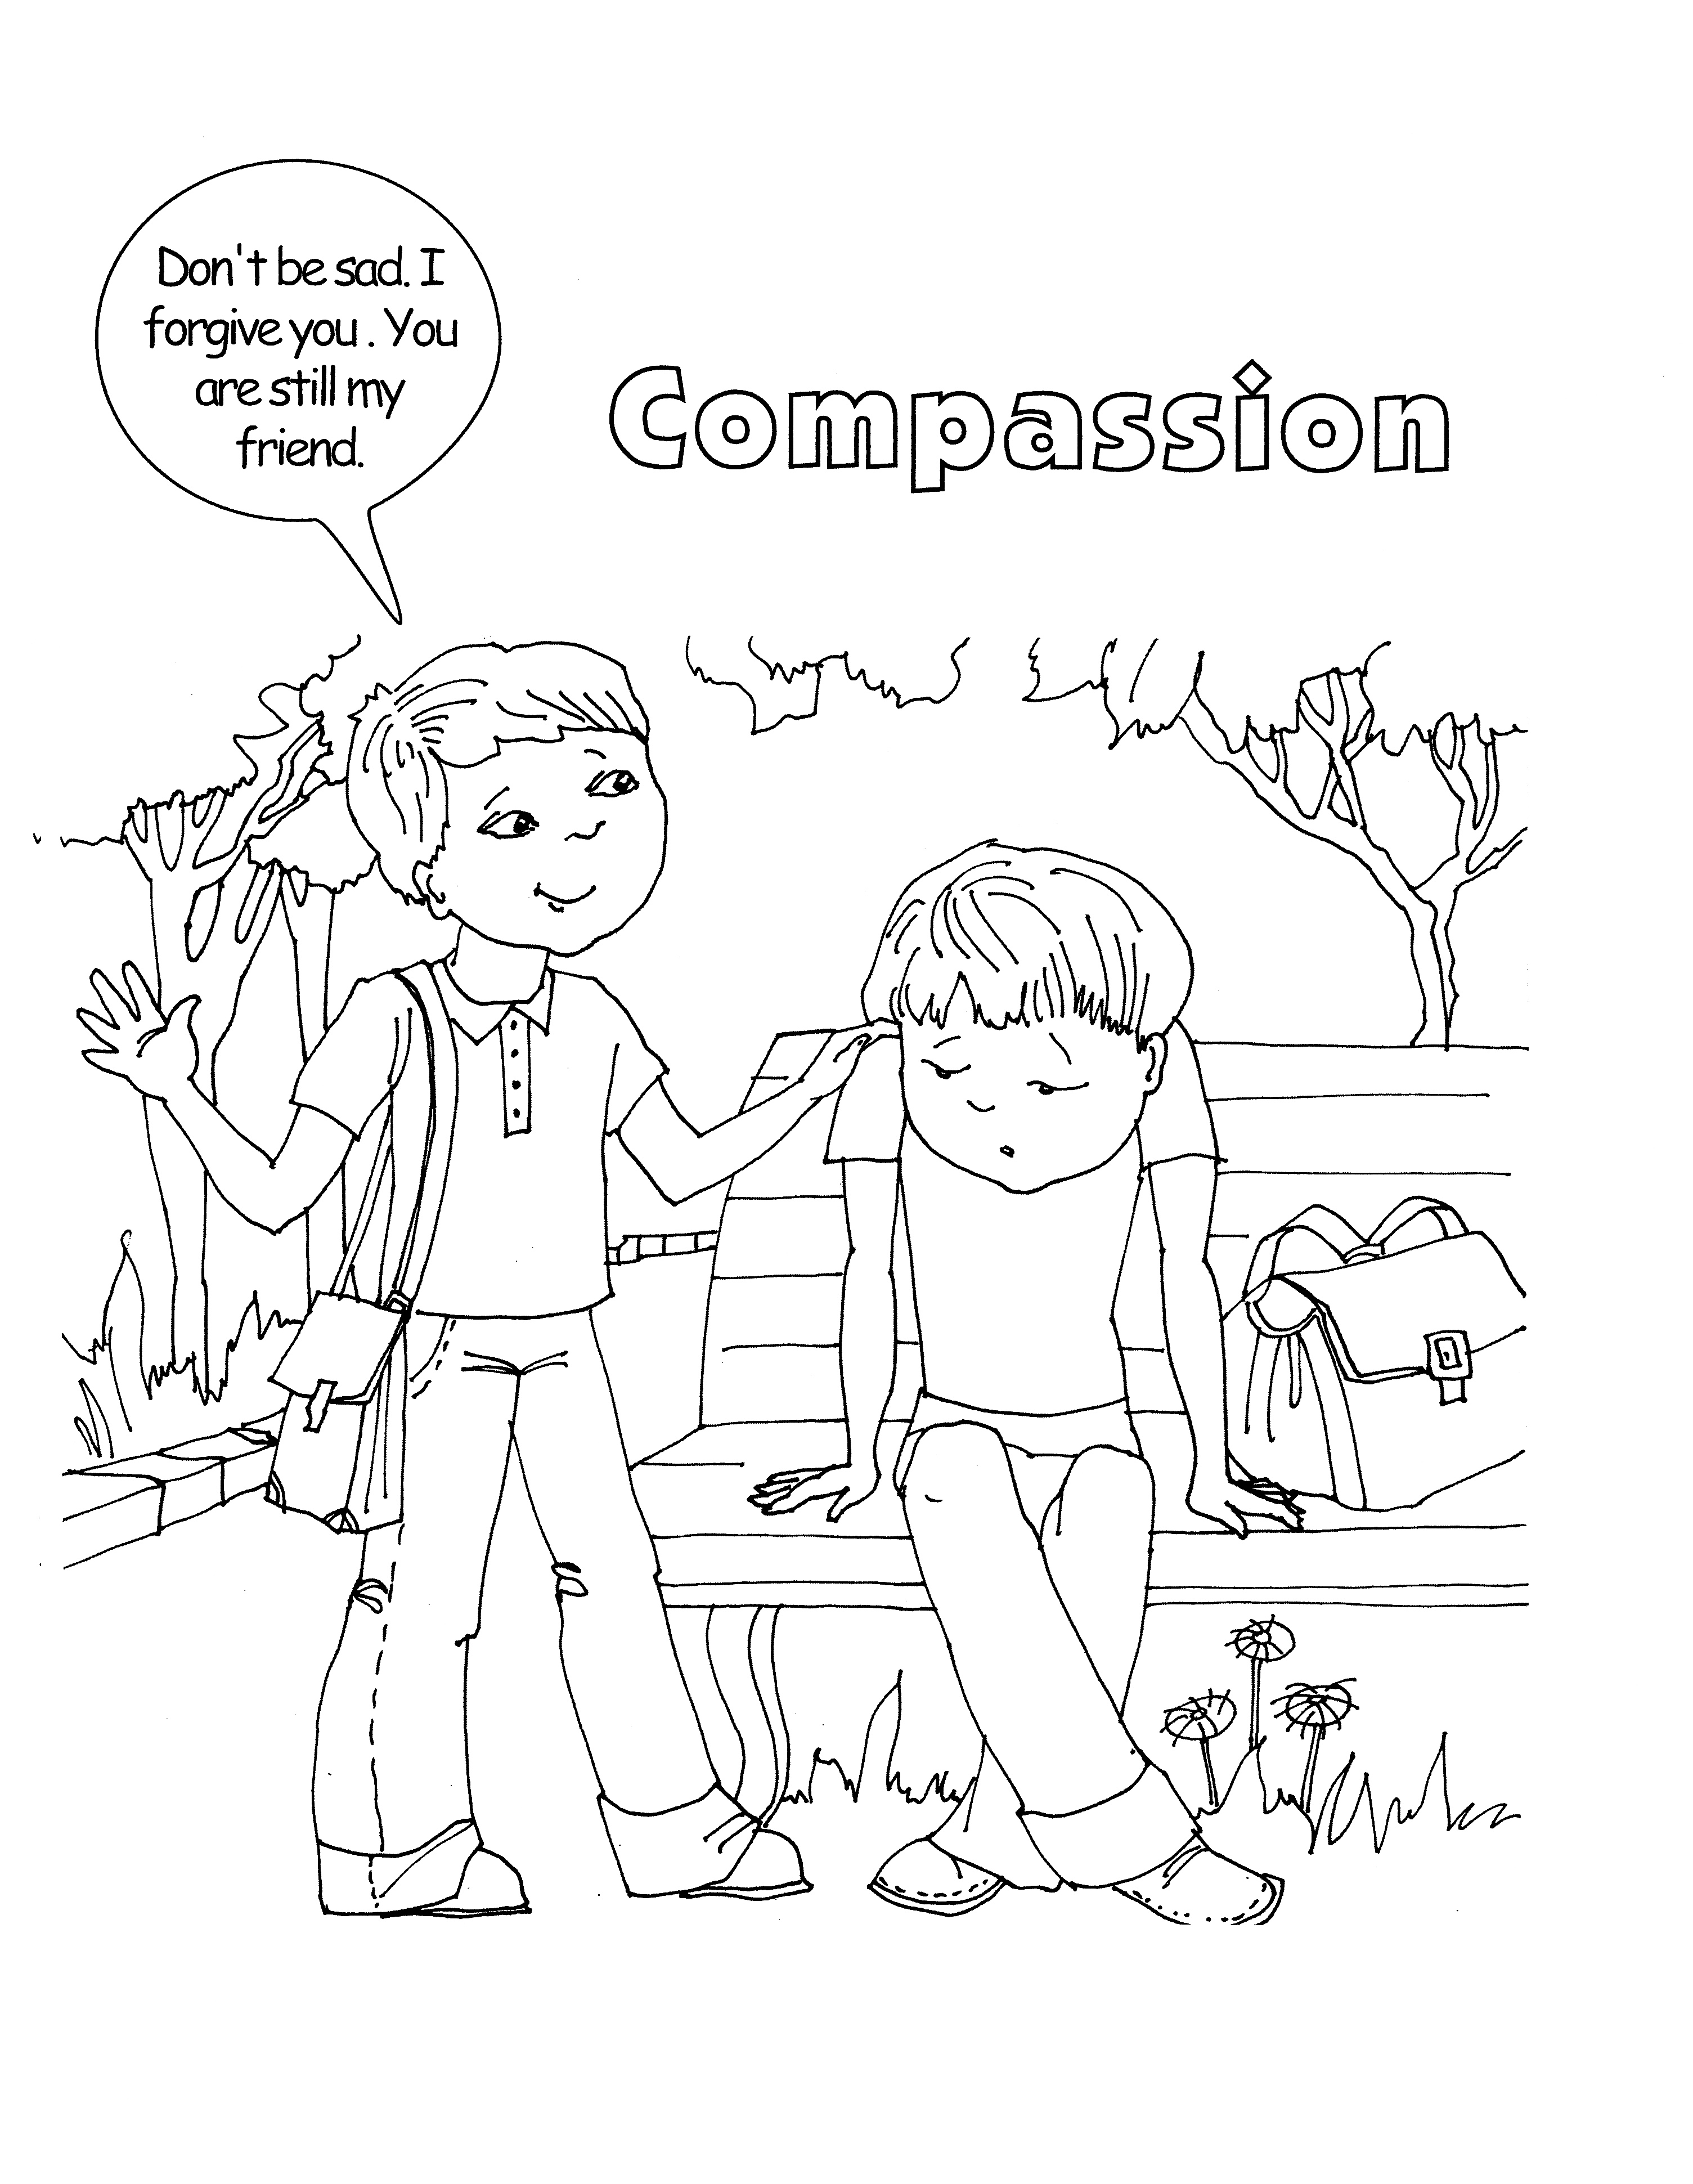 compassion coloring pages | 13: Compassion | Supporting the Core Activities